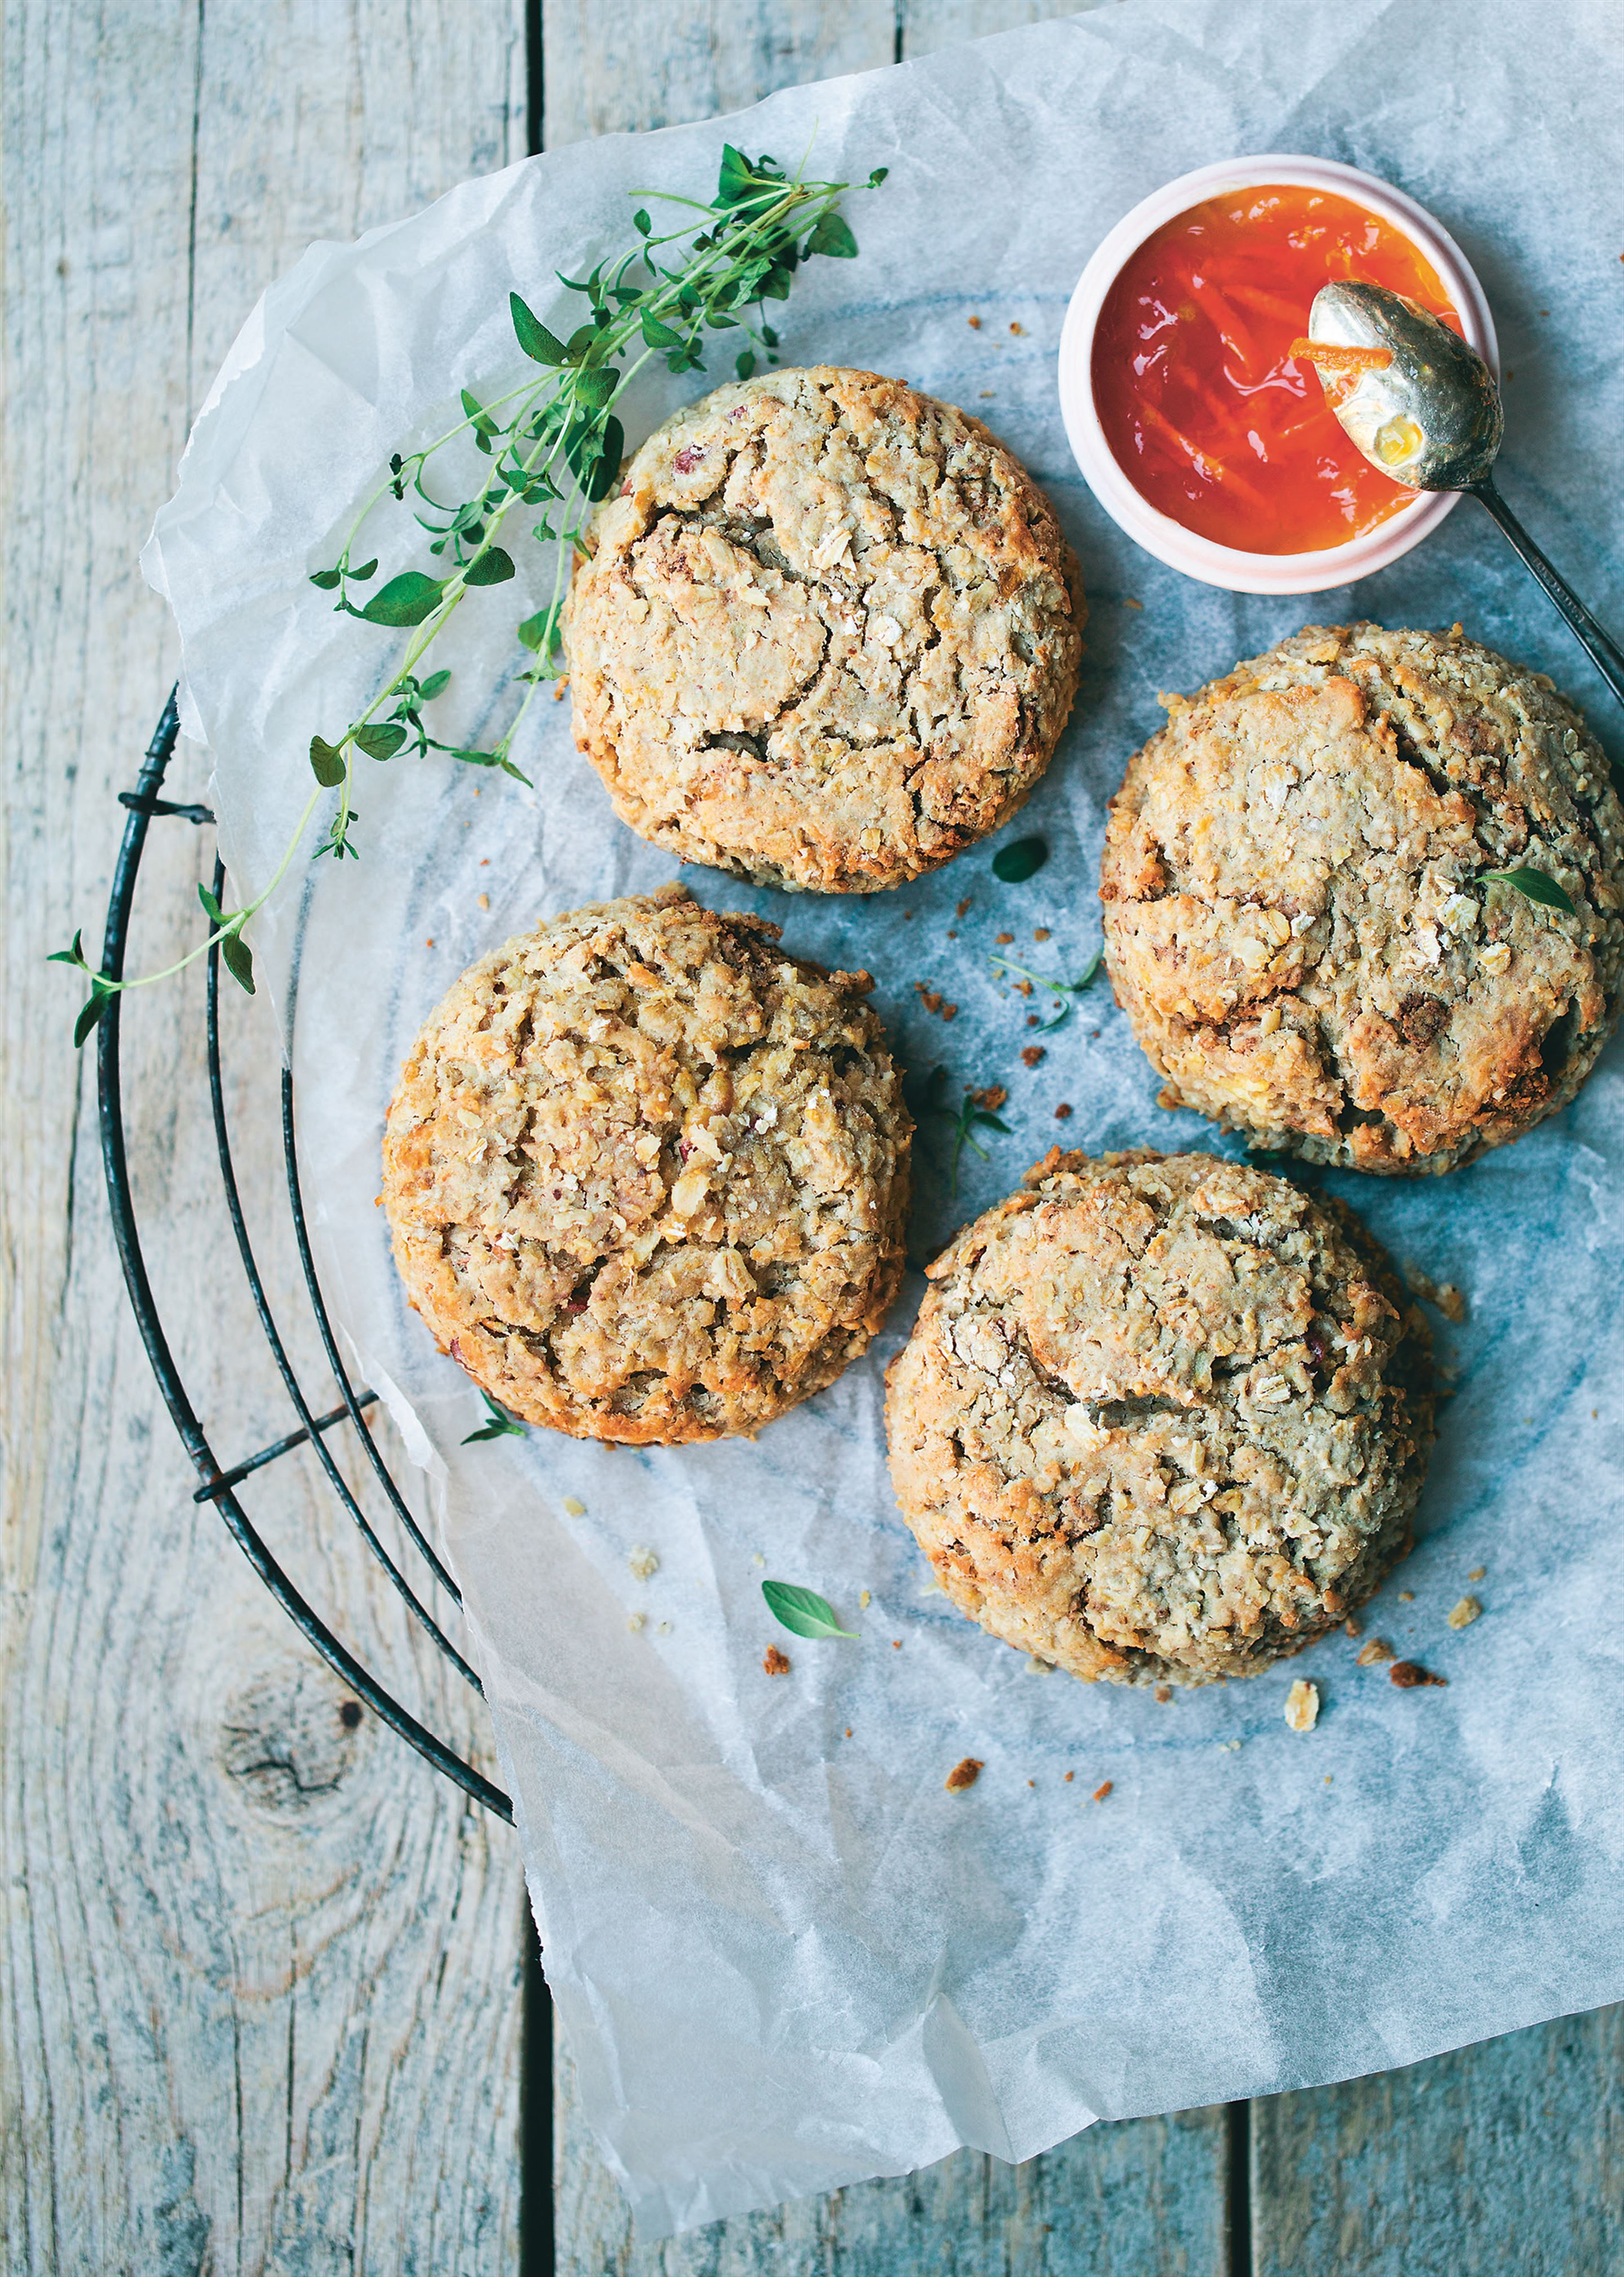 Apple and oat scones